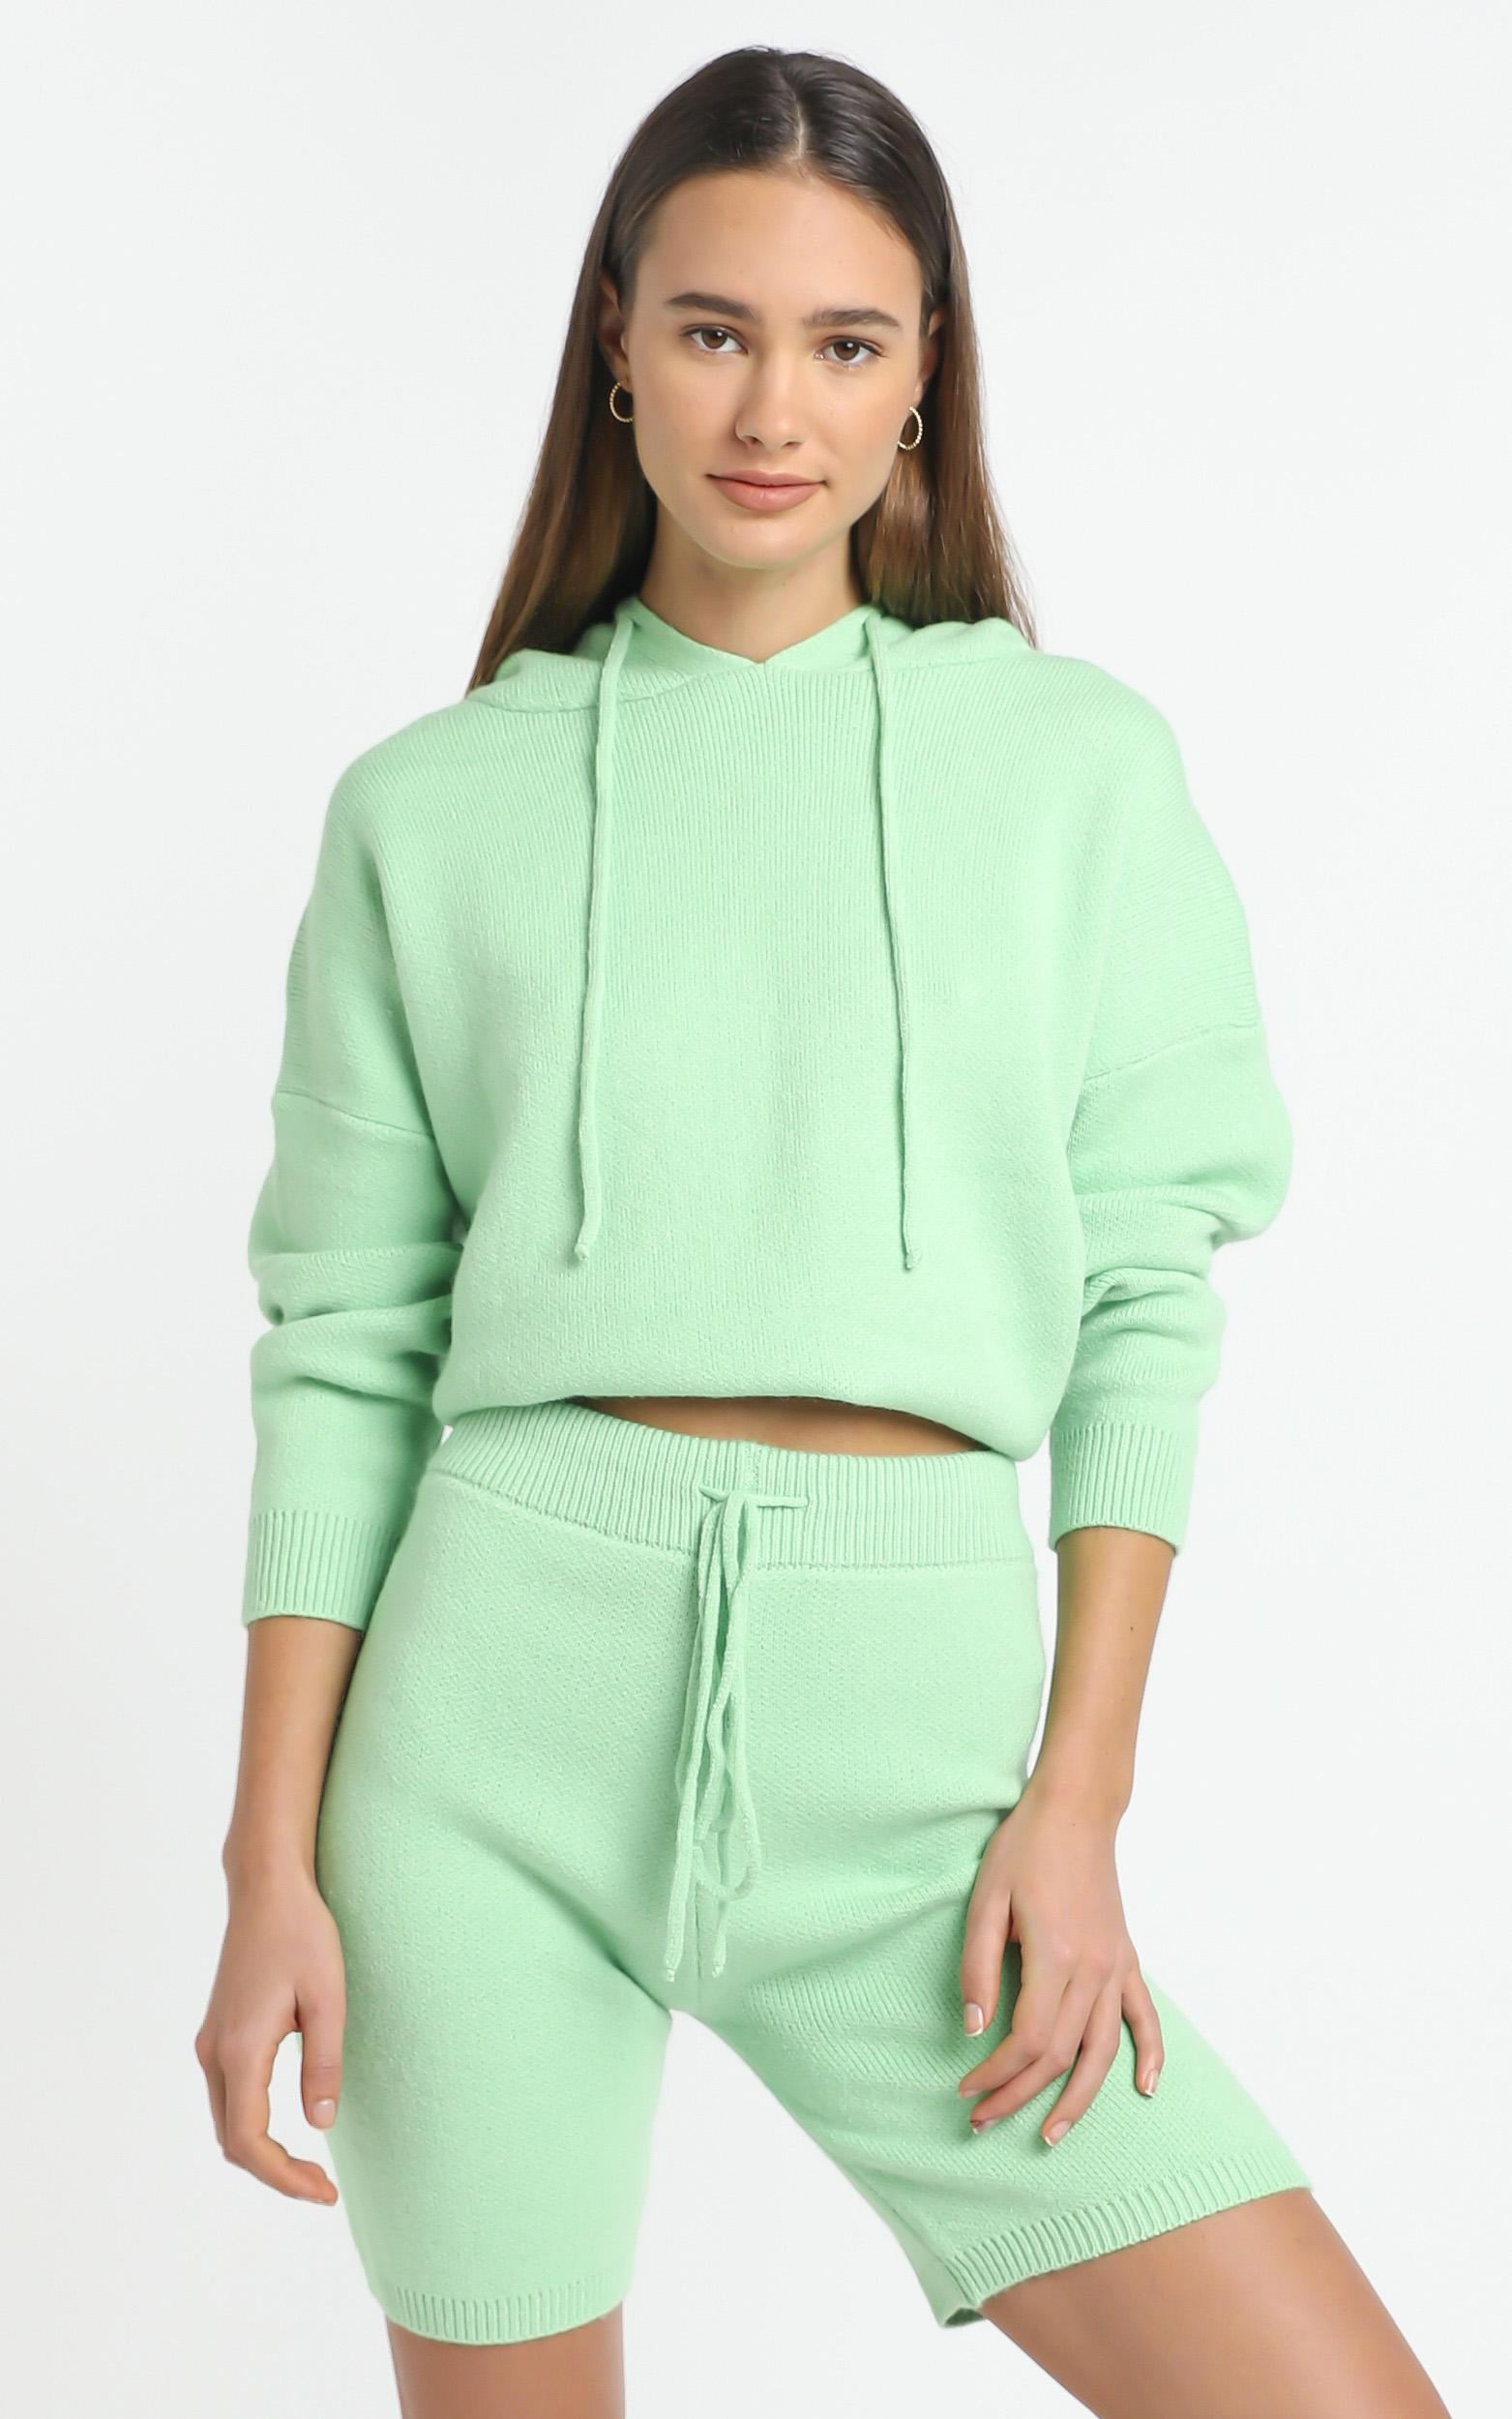 Cosy Club Knit Hoody in Mint - 8 (S), GRN1, hi-res image number null